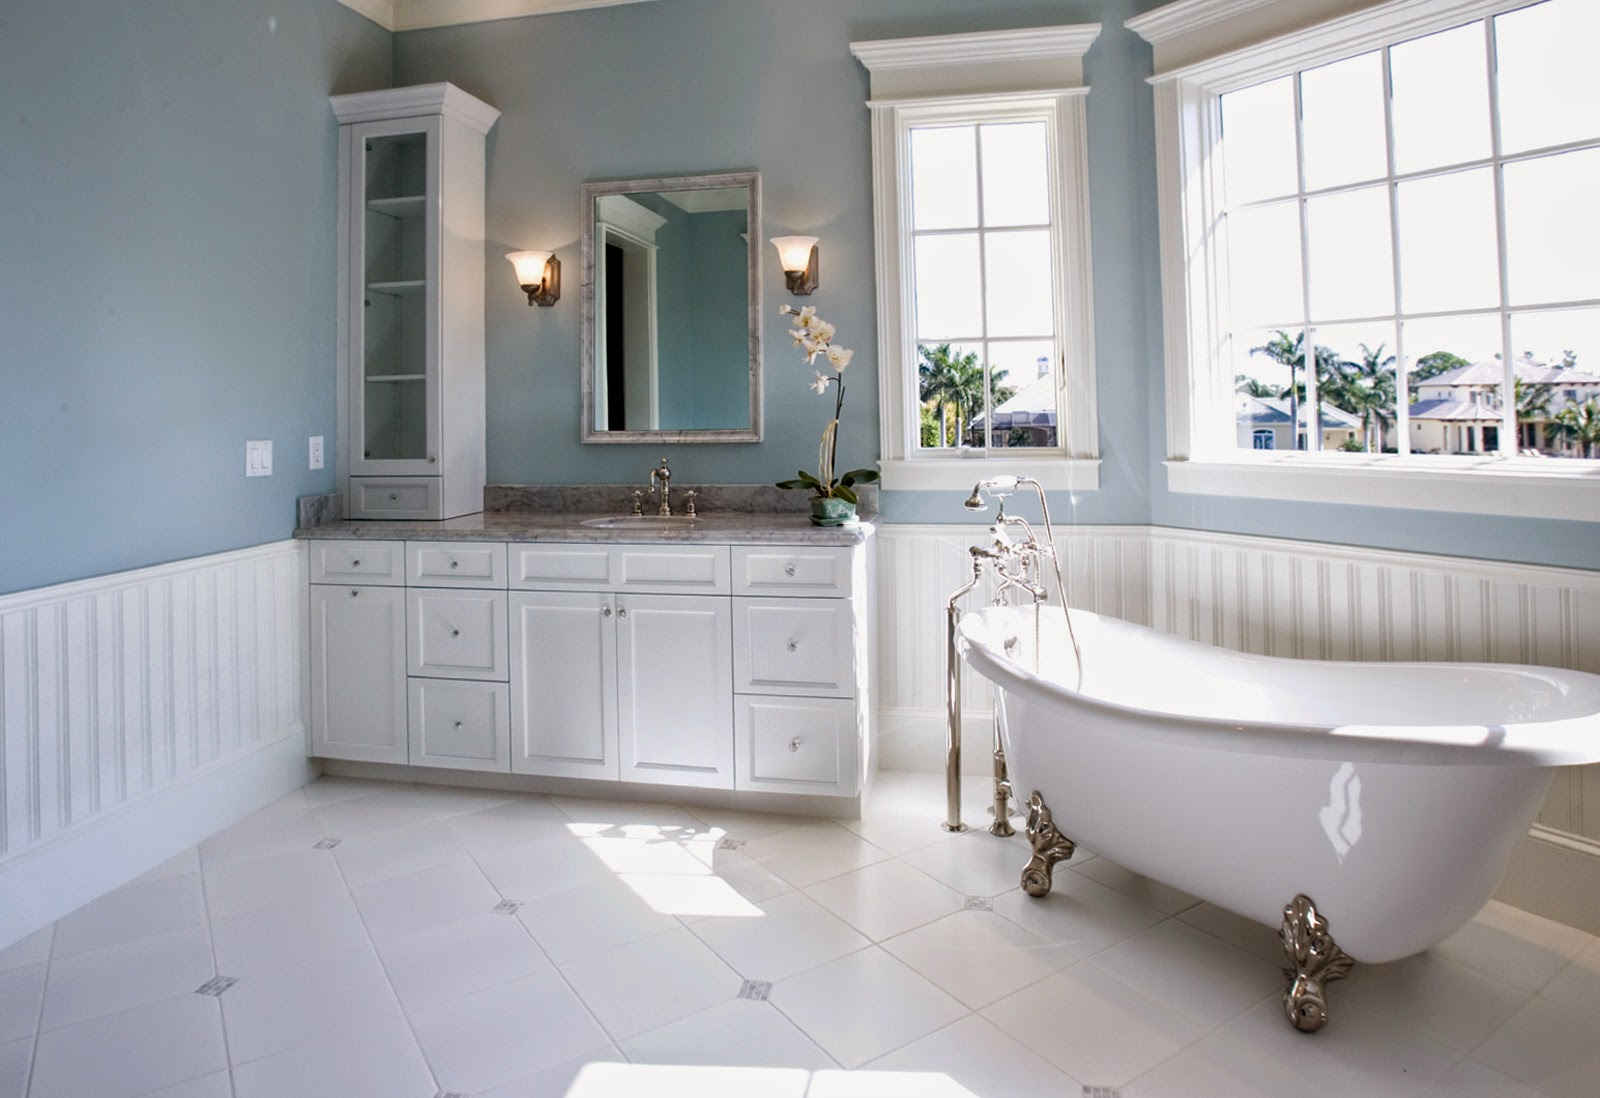 Top 10 beautiful bathroom design 2014 home interior blog for Pictures of beautiful small bathrooms